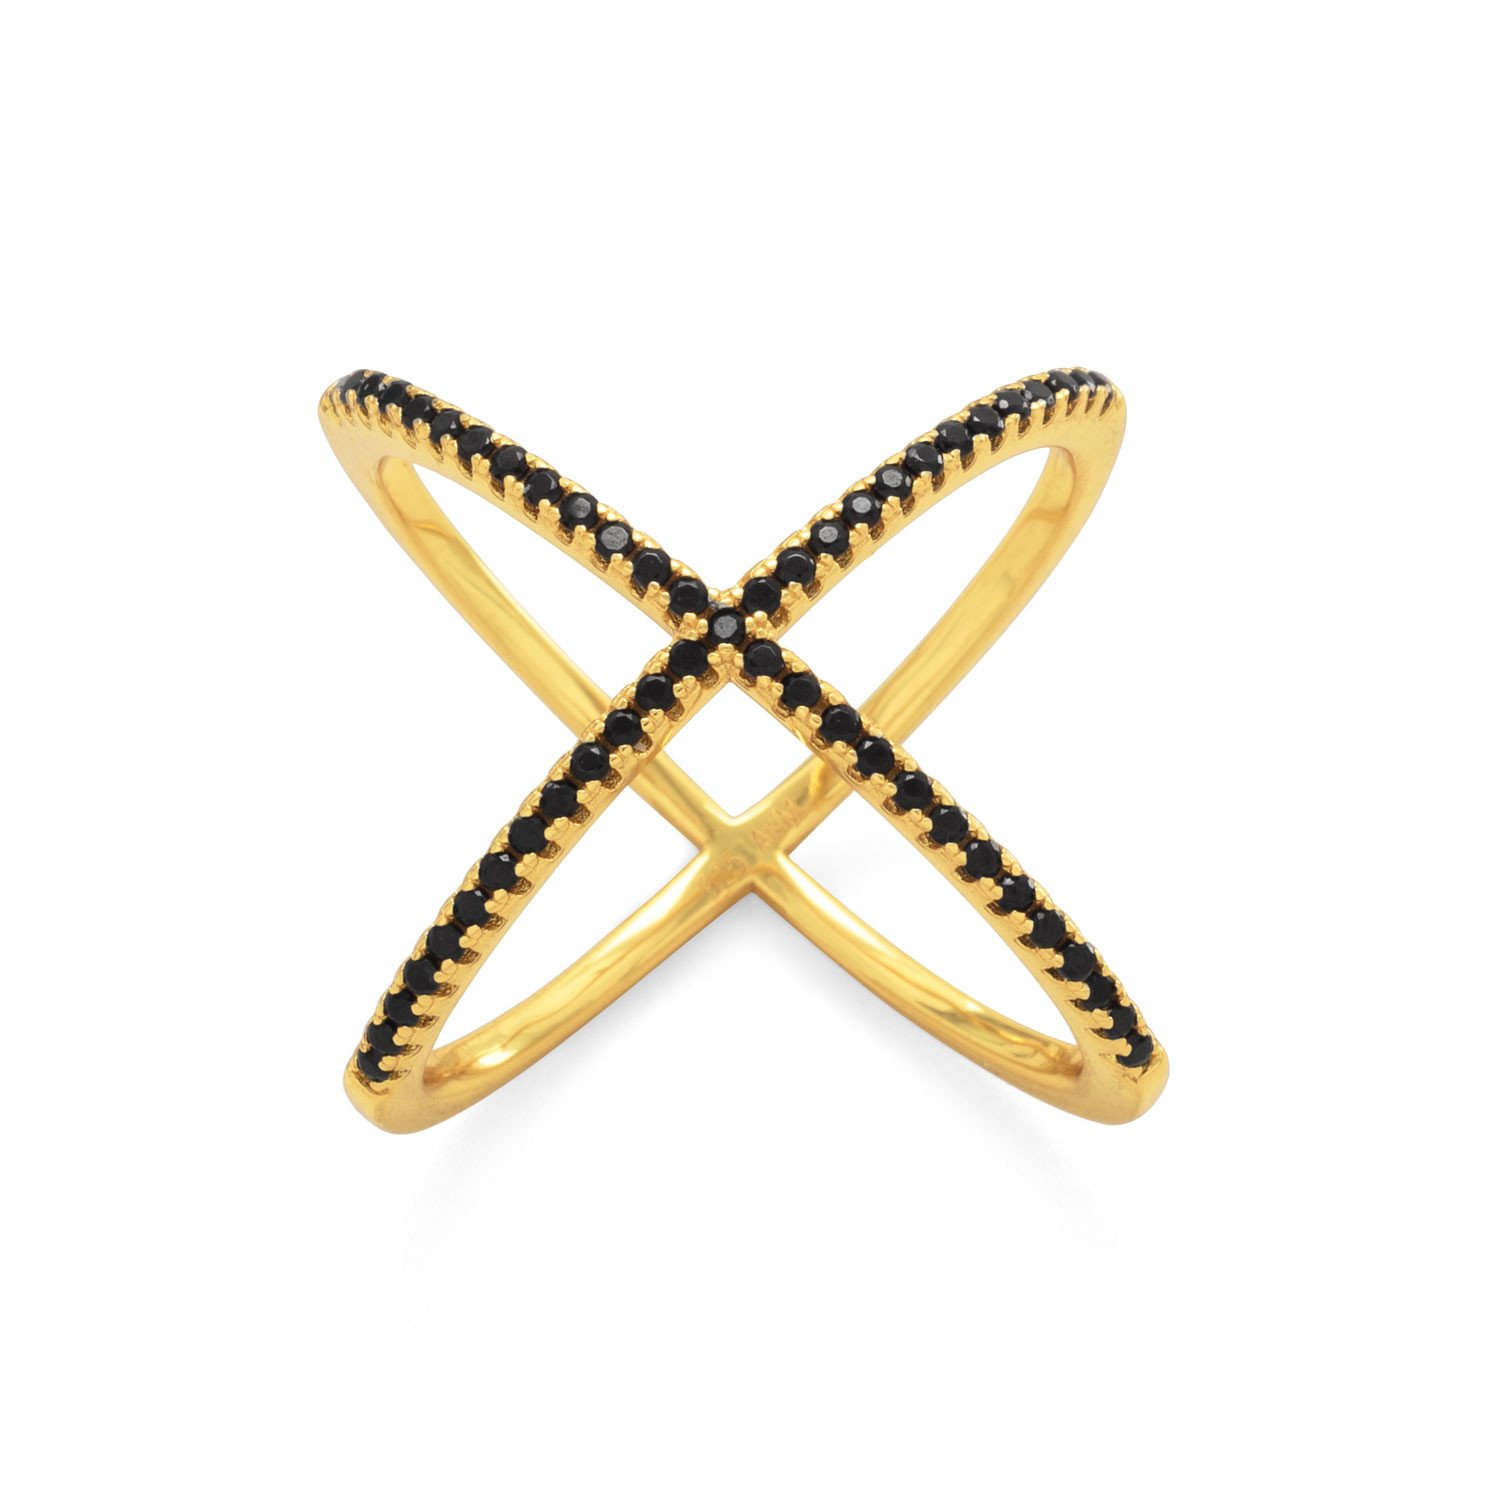 18 Karat Gold Plated Criss Cross 'X' Ring with Black CZs